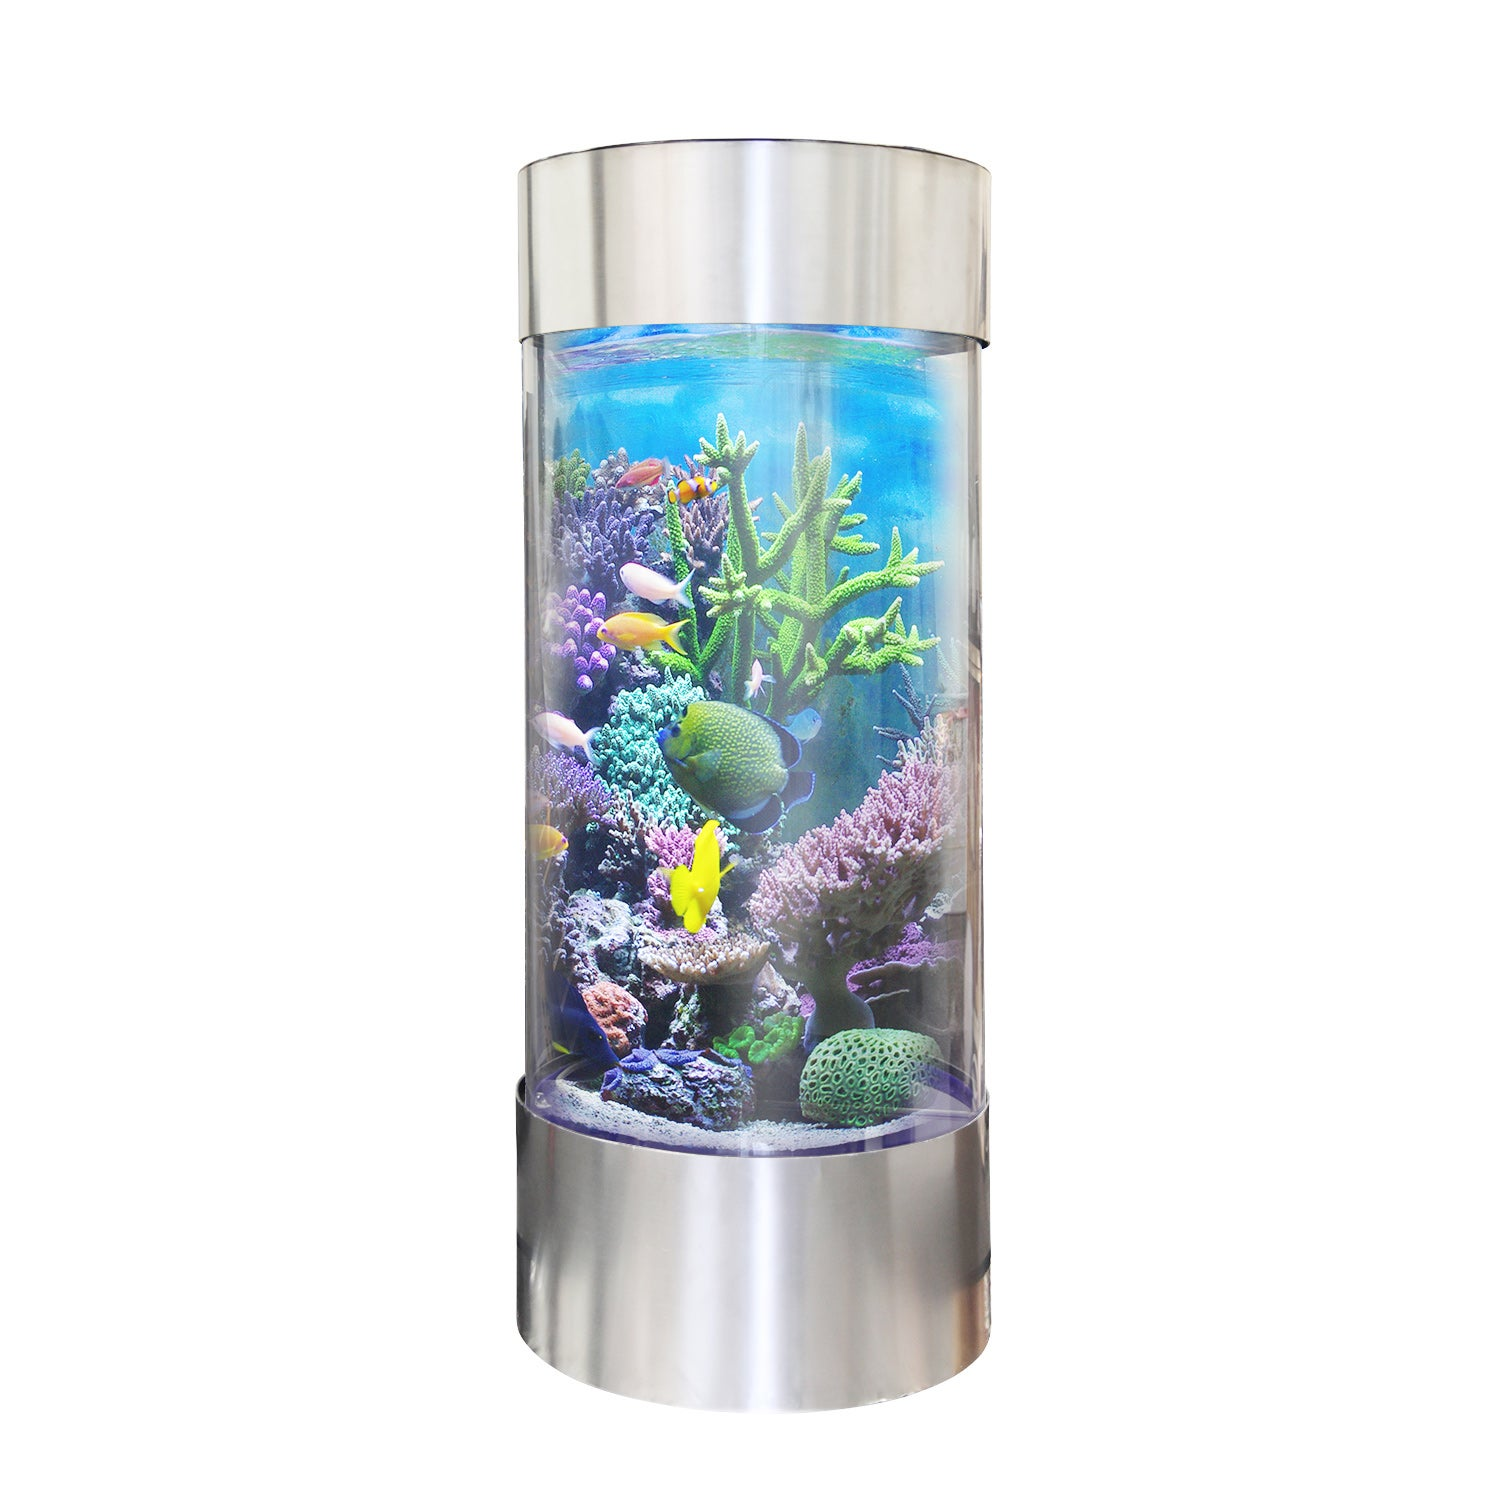 Vapotek 360 Stainless Steel Trim Acrylicand Plastic Cylinder Fish Tank